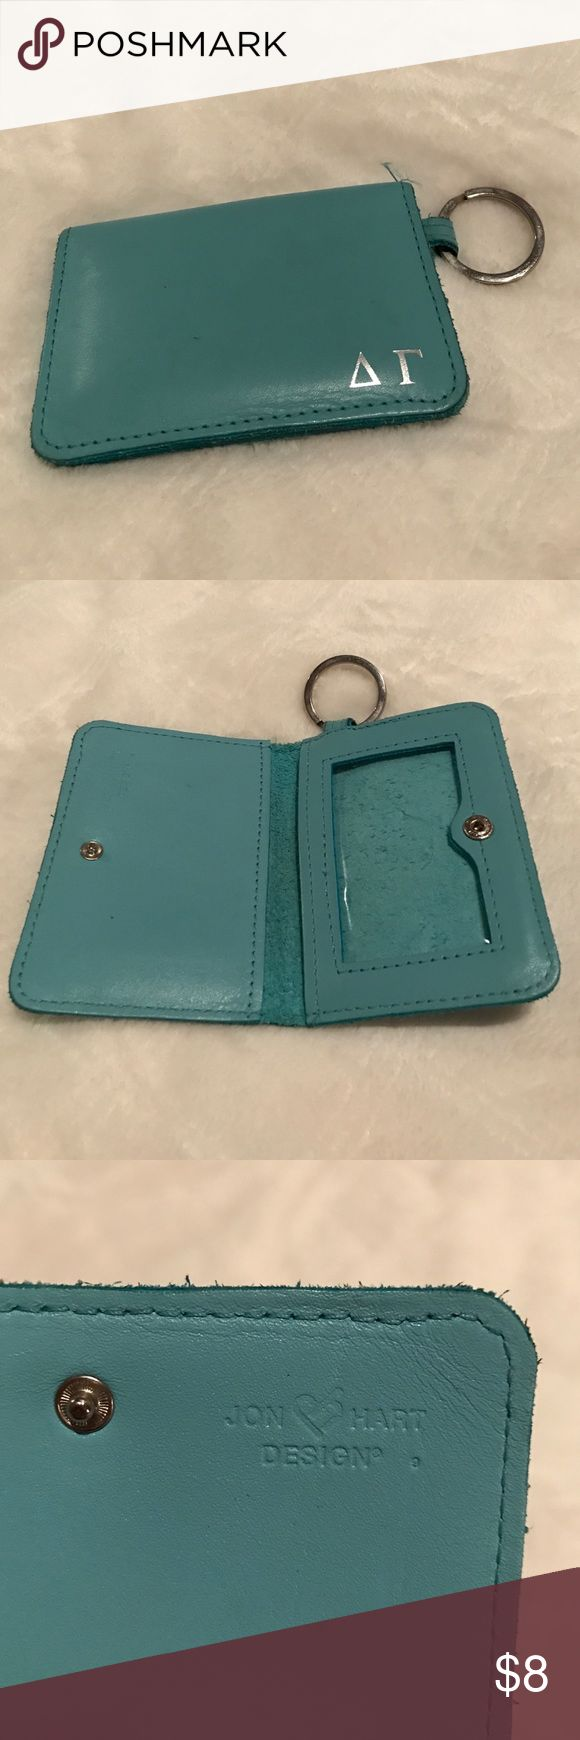 John Hart Delta Gamma card holder Job Hart card holder in Tiffany blue. Key ring. Embossed with the Greek letters for Delta and Gamma. Lightly used. Jon Hart Accessories Key & Card Holders